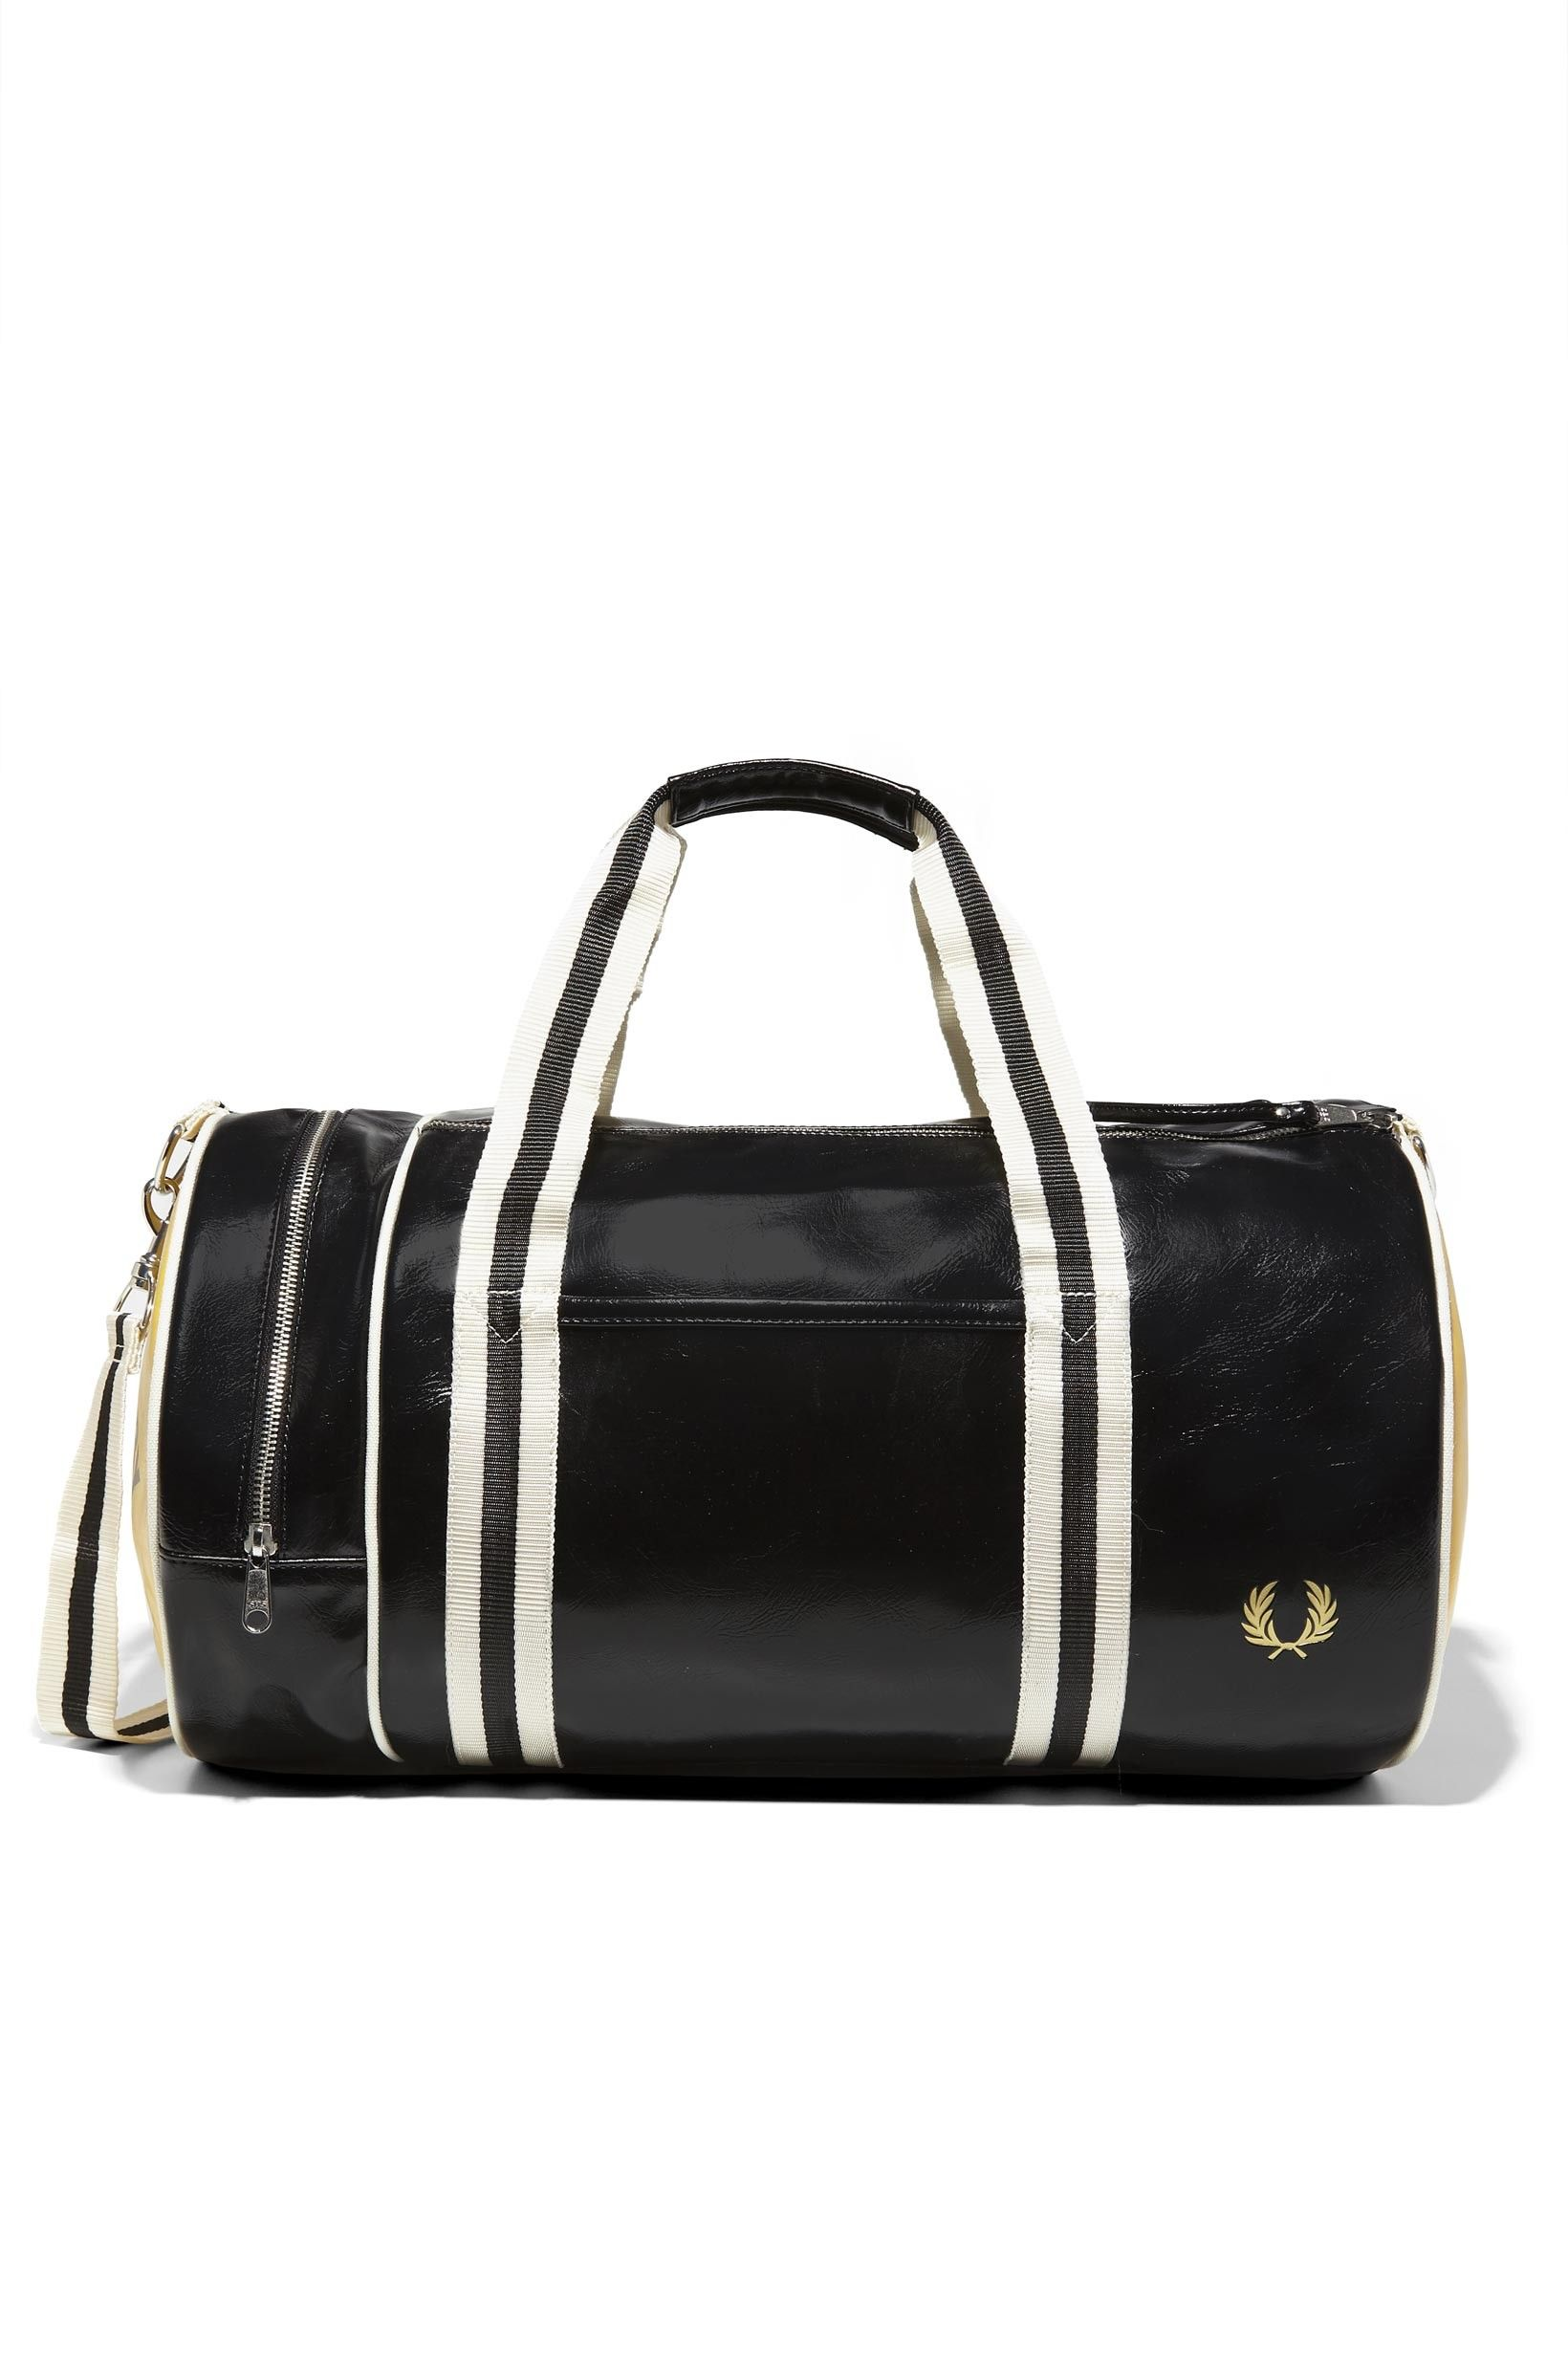 12bd2b14d83c Fred Perry - Classic Barrel Bag Black   Yellow